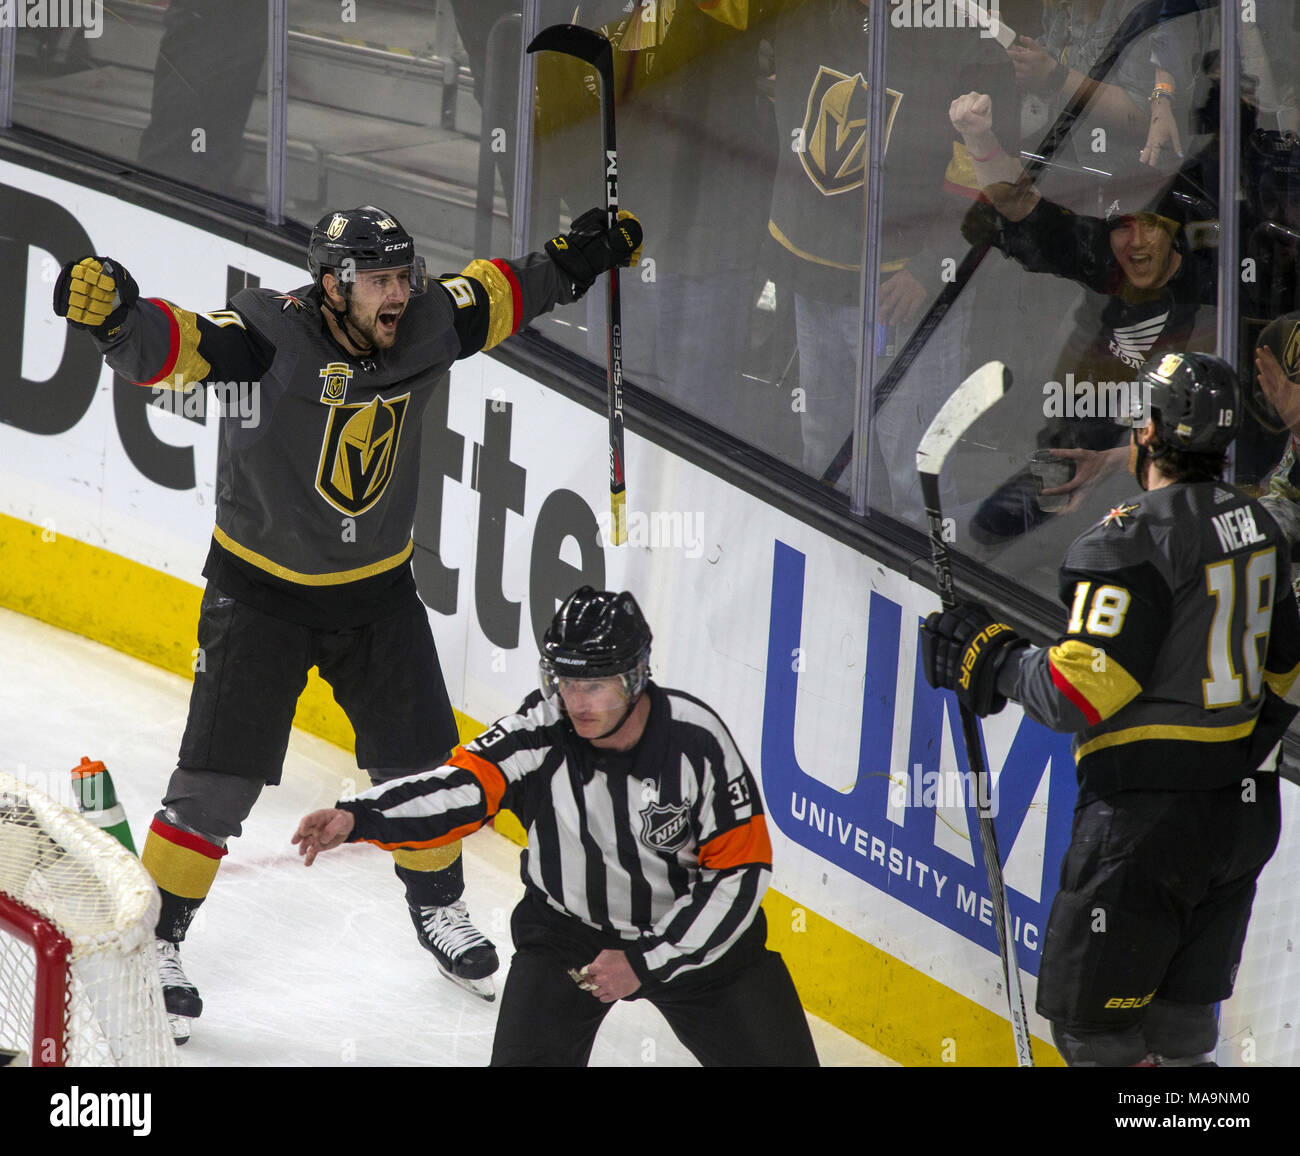 Las Vegas Nevada Usa 30th Mar 2018 Vegas Golden Knights Left Wing Tomas Tatar 90 Is Pumped By A Team Goal With Left Wing James Neal 18 During The Second Period Of